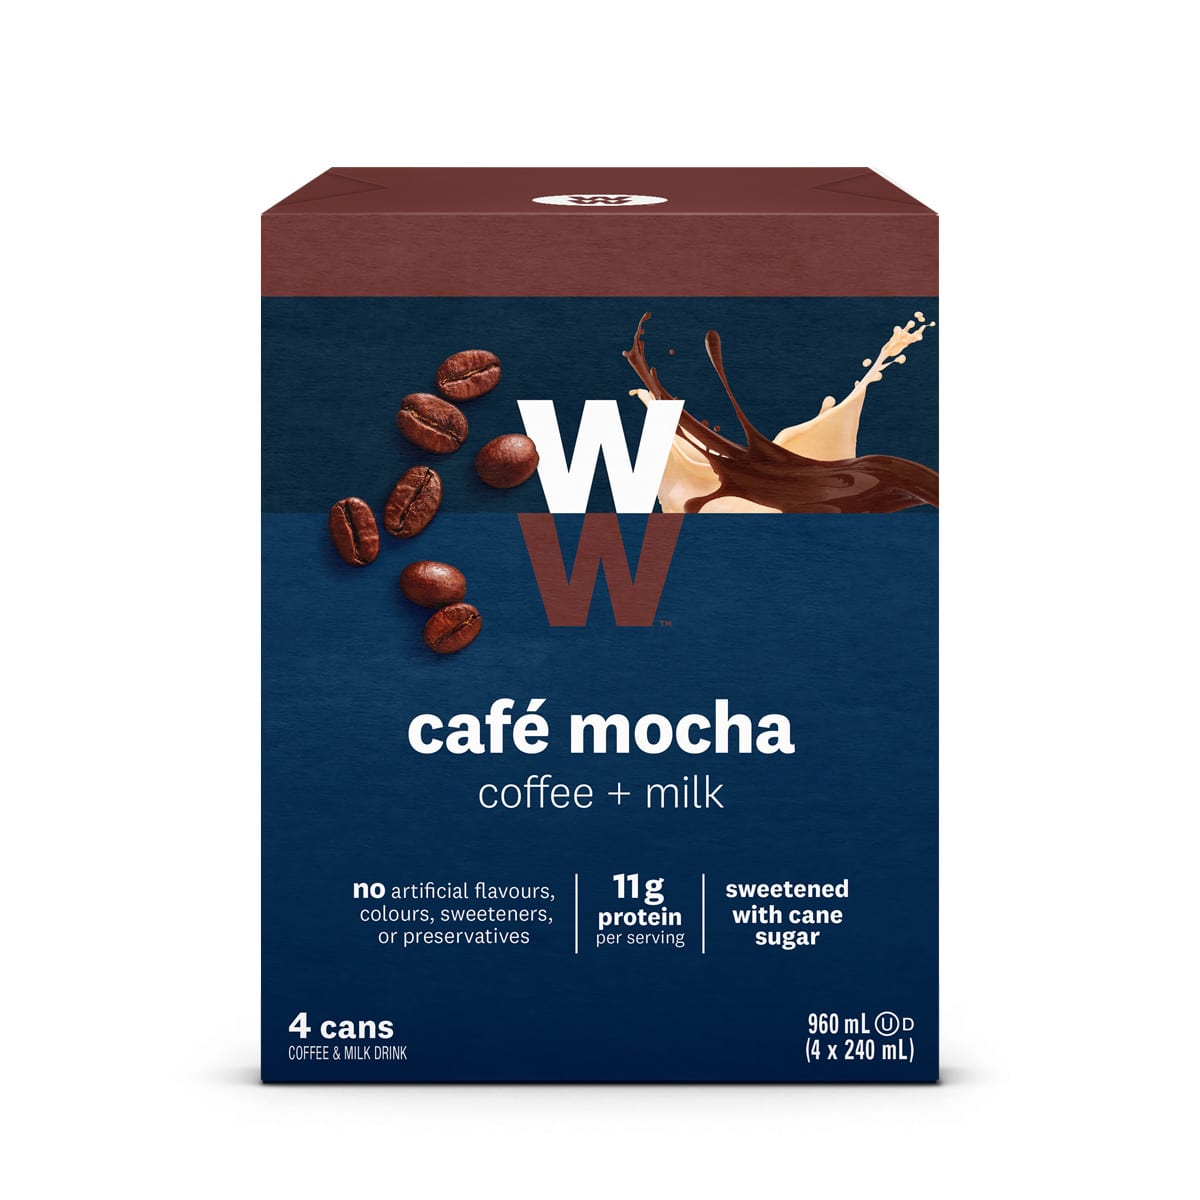 WW Cafe Mocha, Pack of 4 Cans